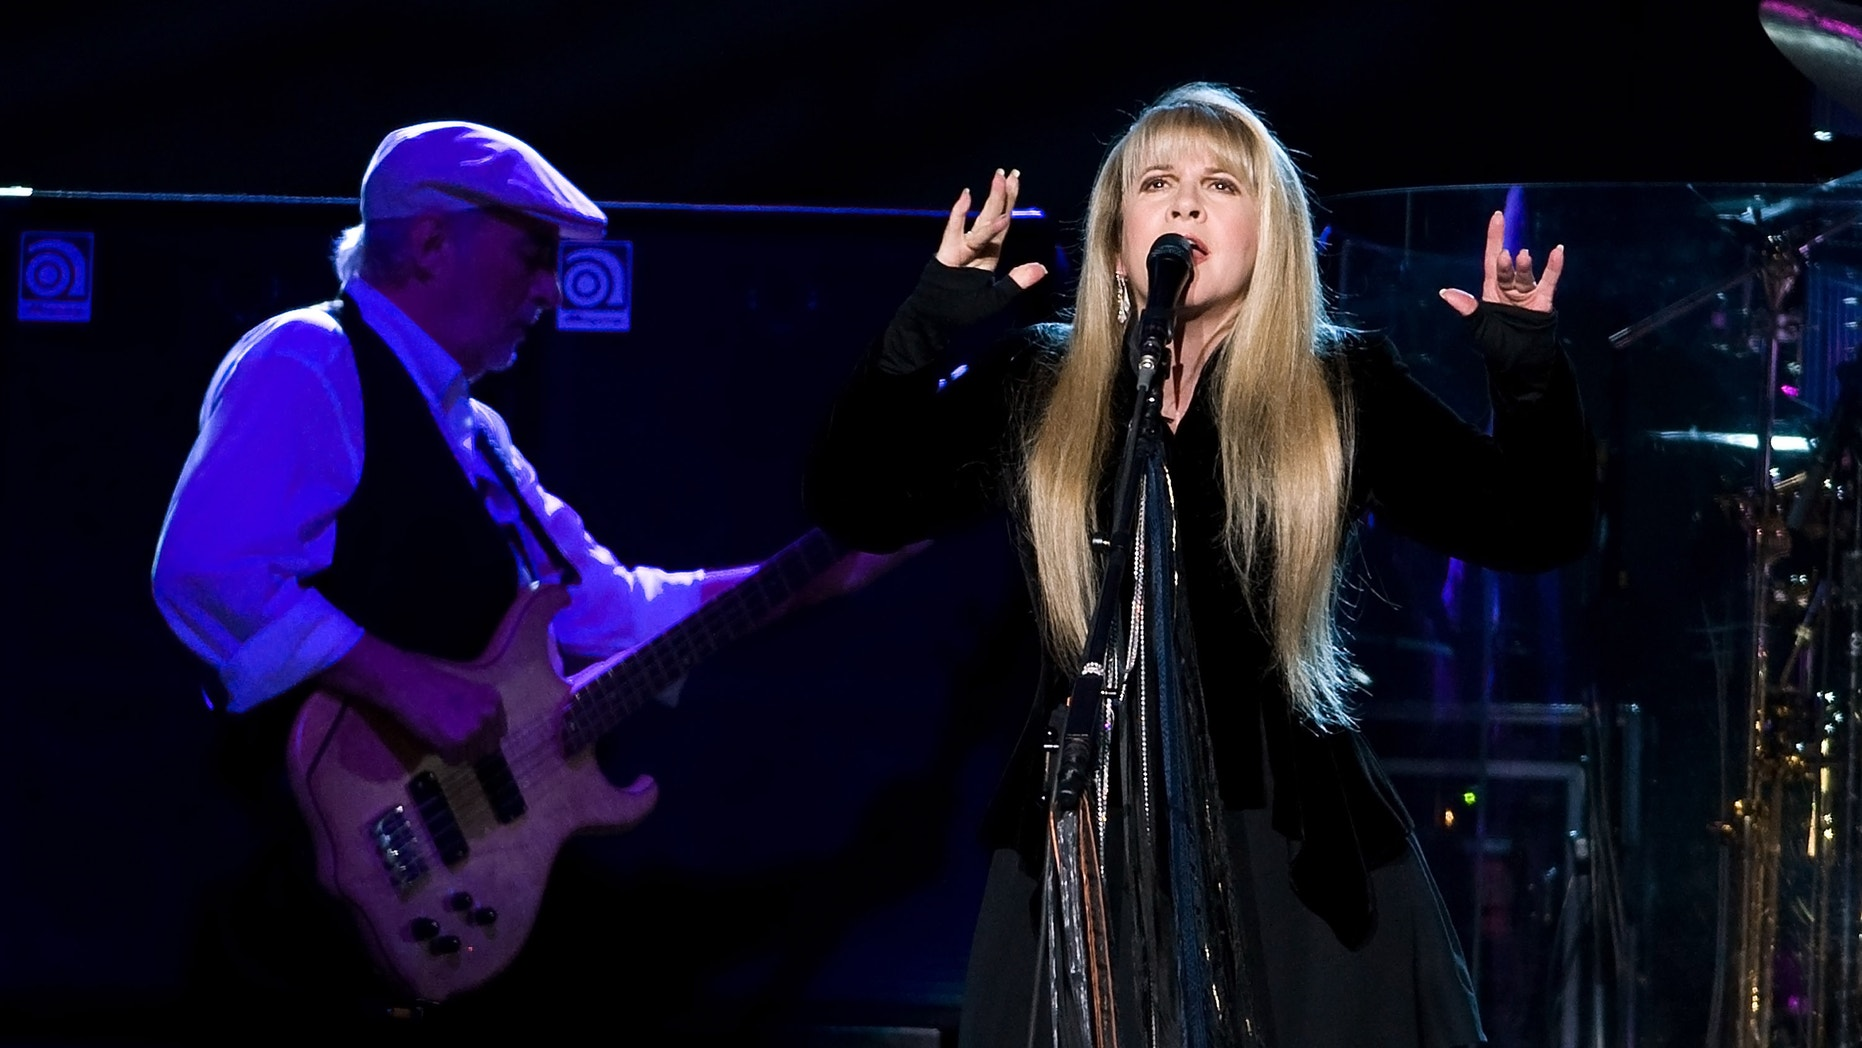 This March 19, 2009 file photo shows John McVie, left, and Stevie Nicks of Fleetwood Mac performing at Madison Square Garden in New York.